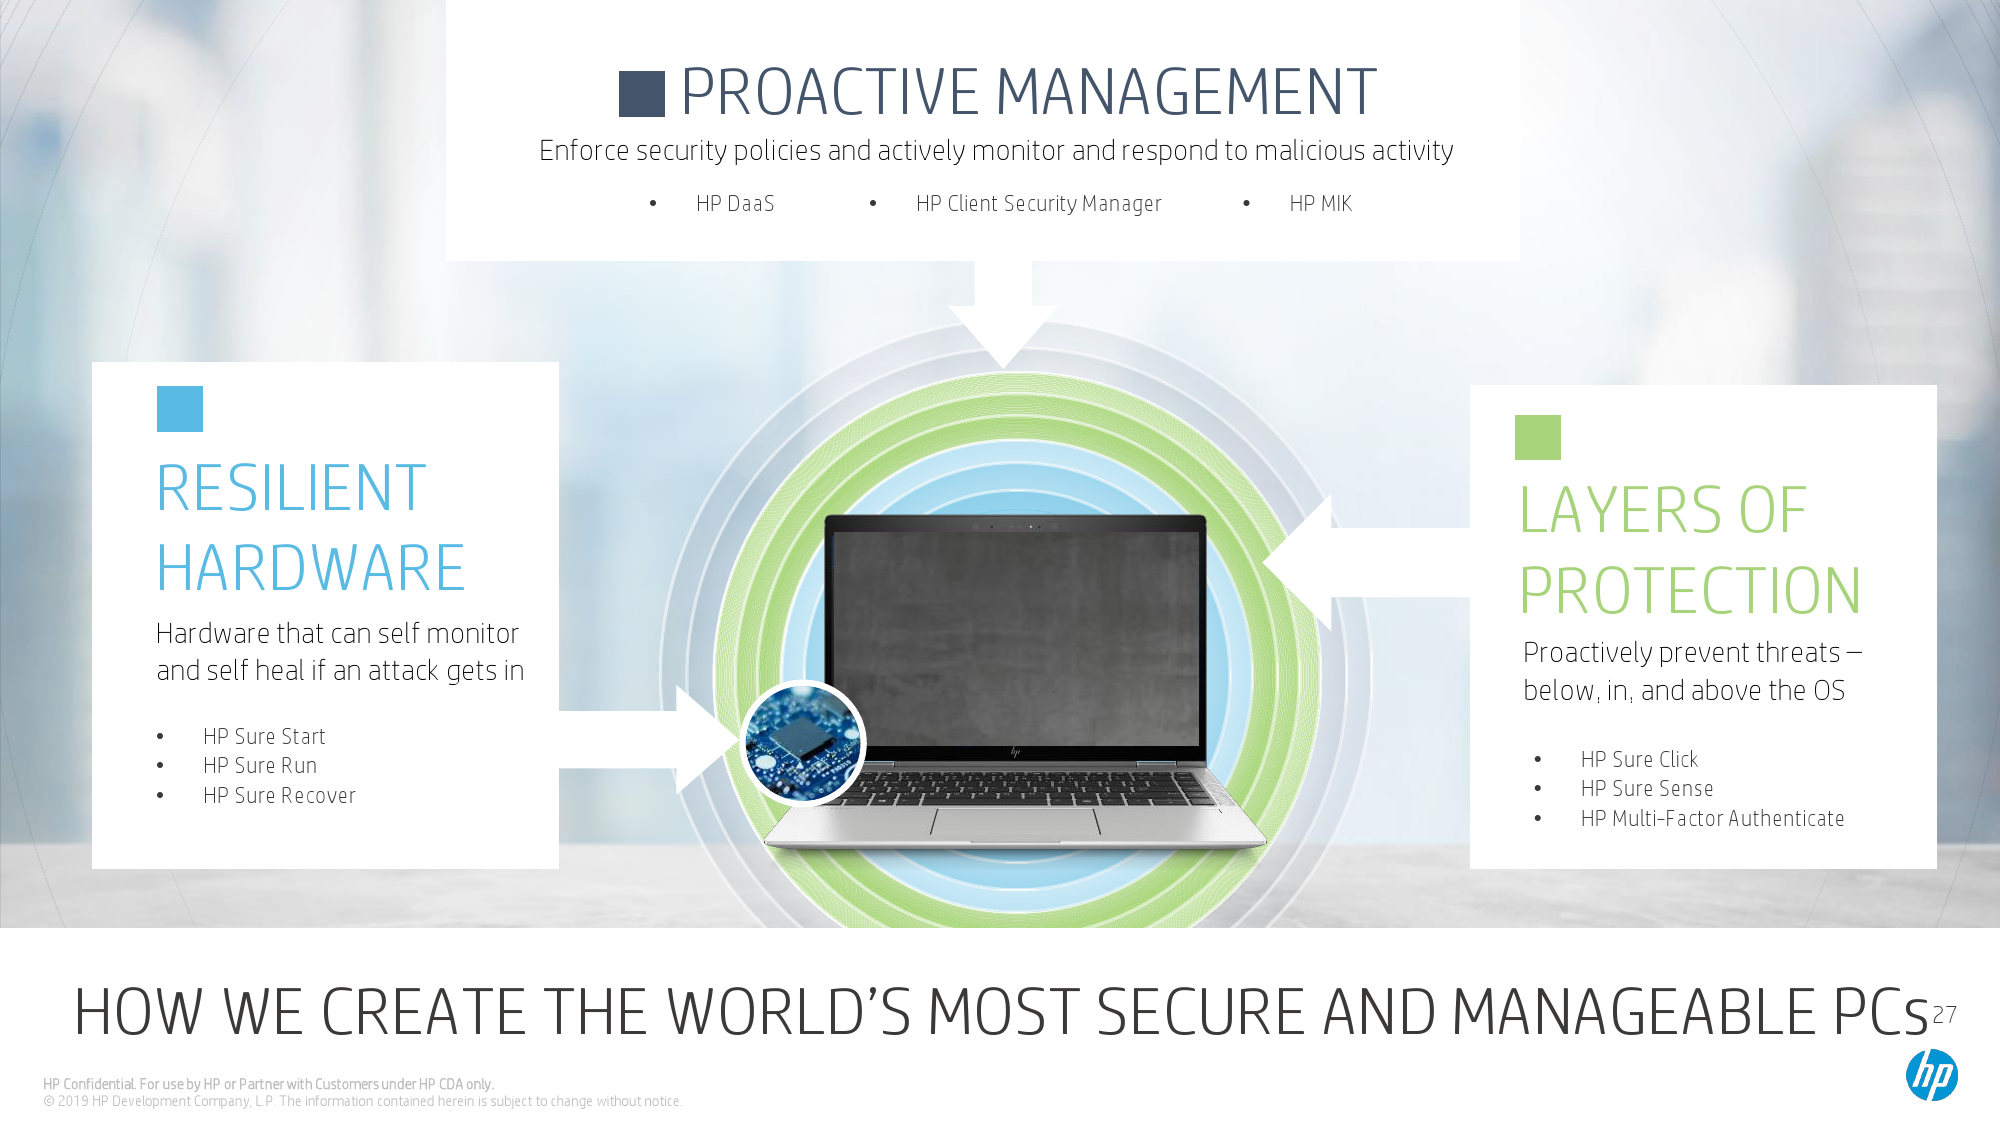 HP's Security Push: Sure Sense & Endpoint Security Controller